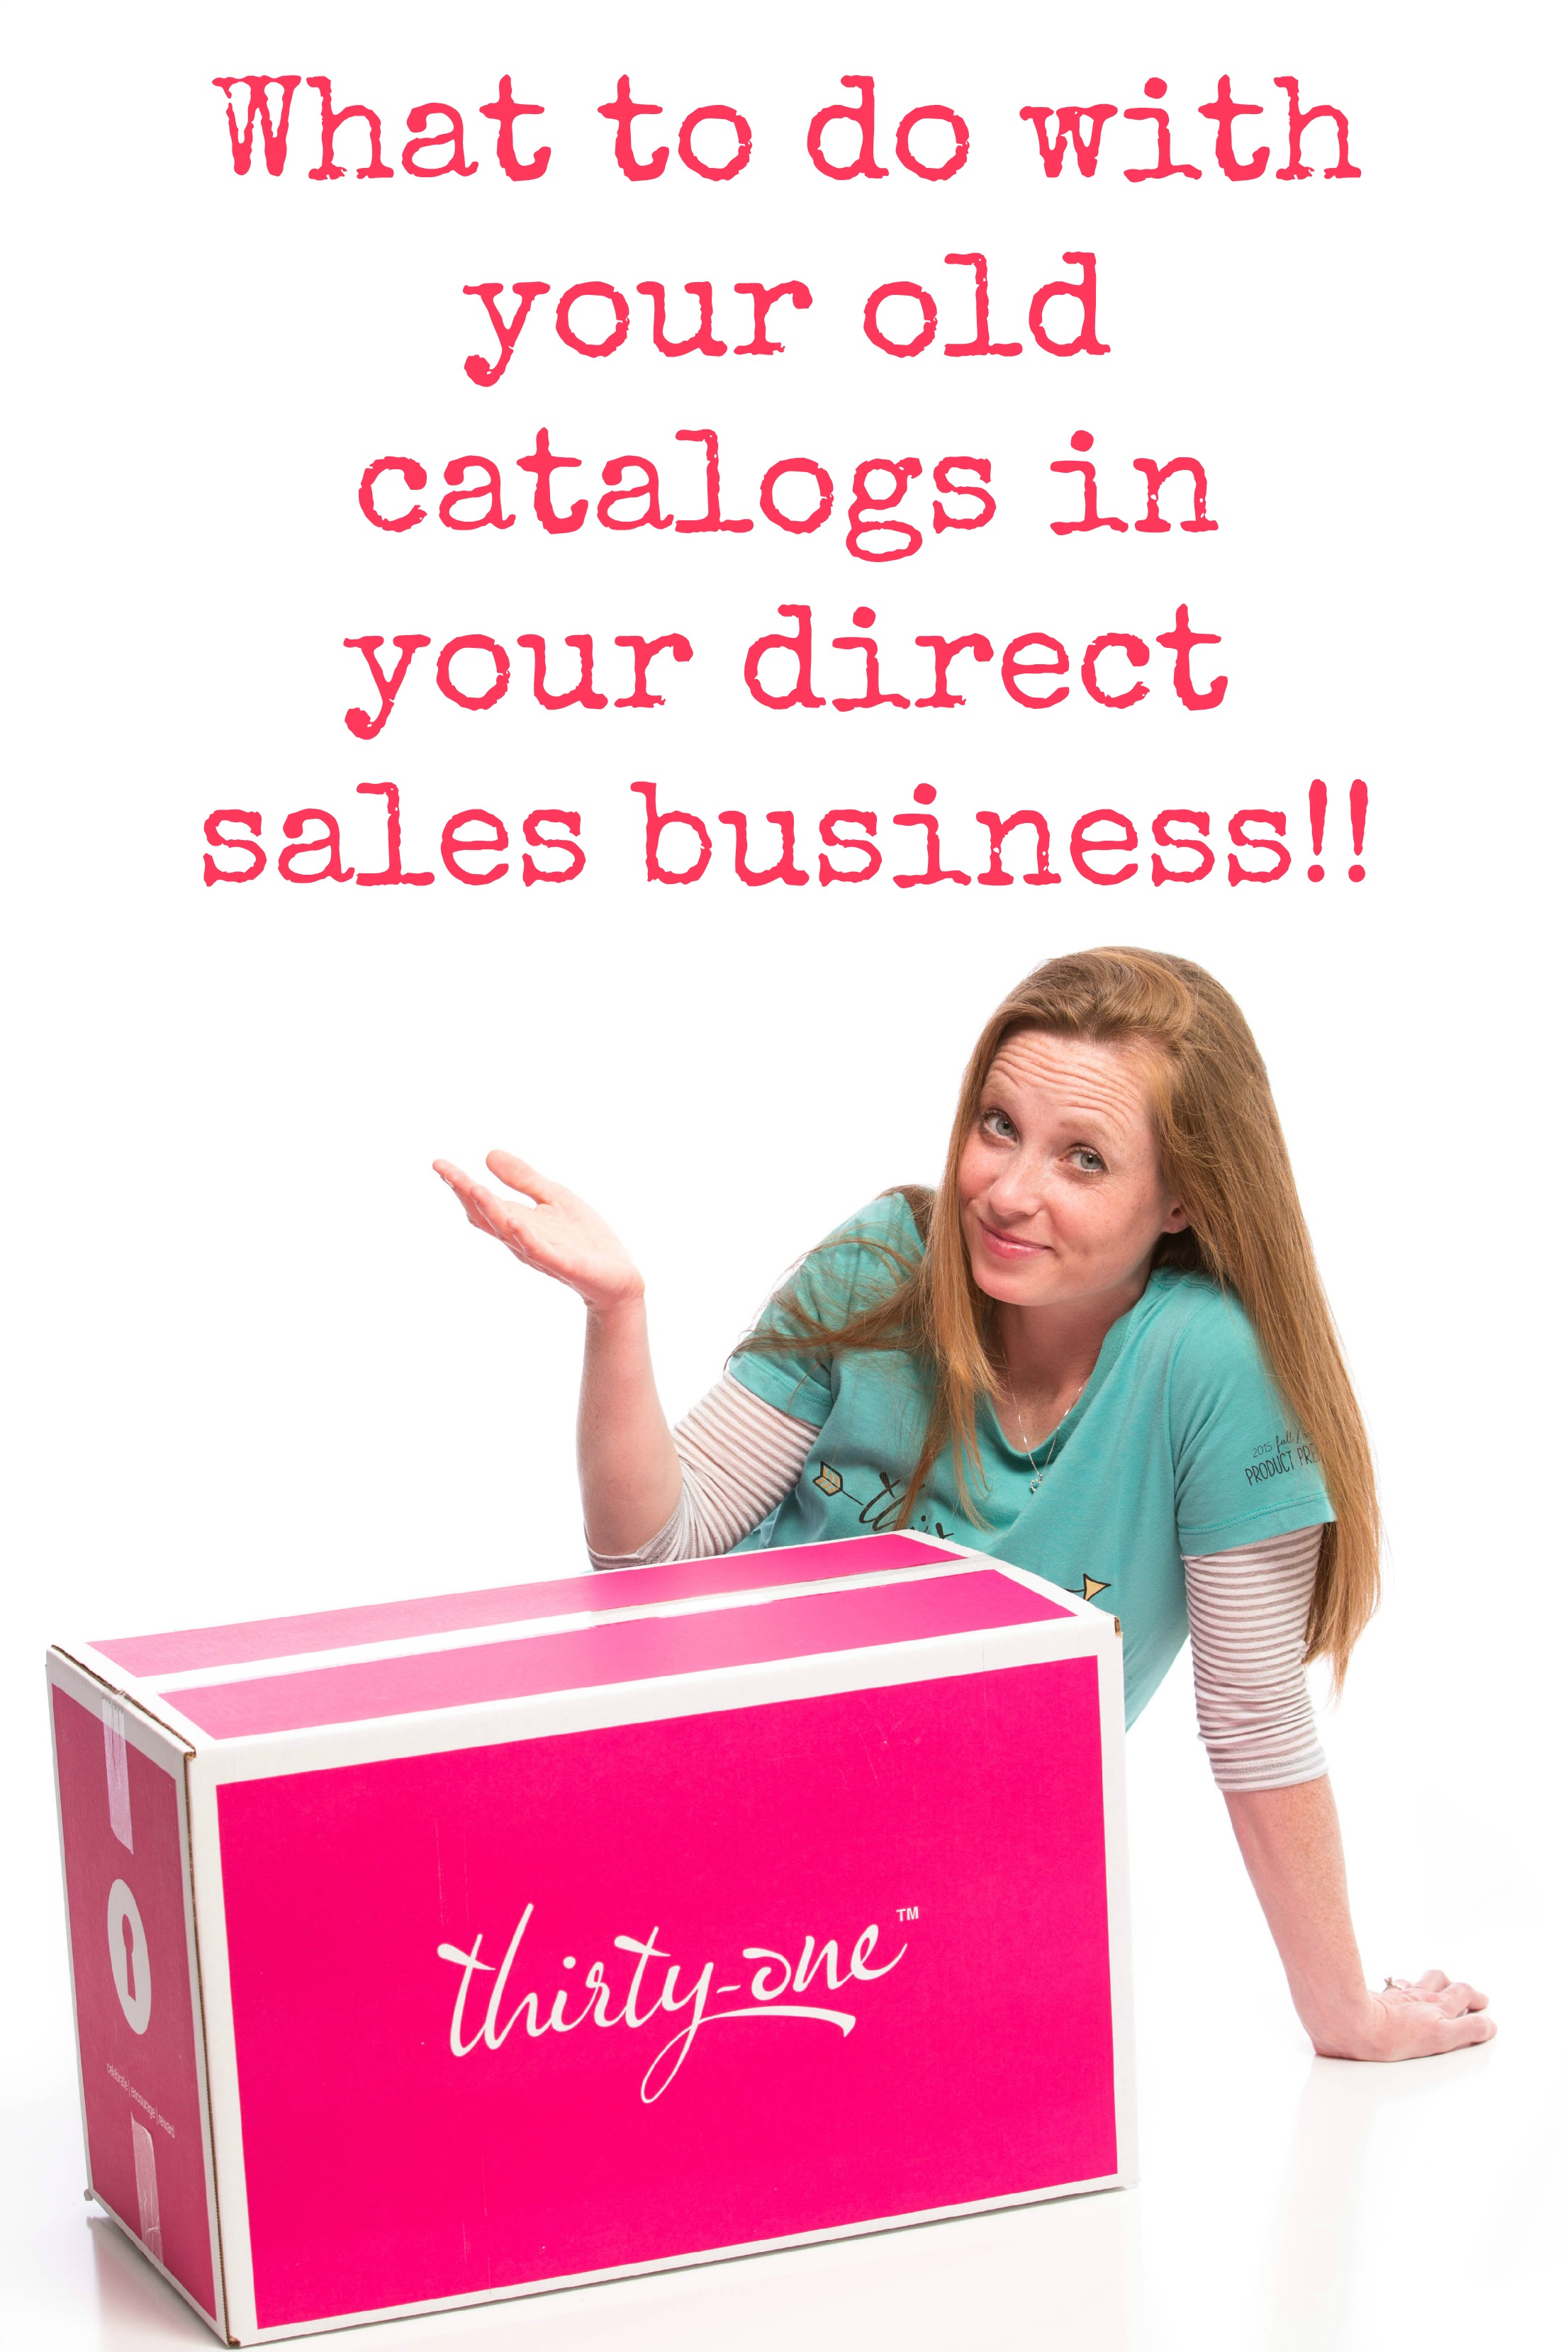 sales and melissa Free lookups for zip codes, maps, zip+4, carrier routes, addresses, reverse phone, ip location, sic codes, street names, property info and much more.